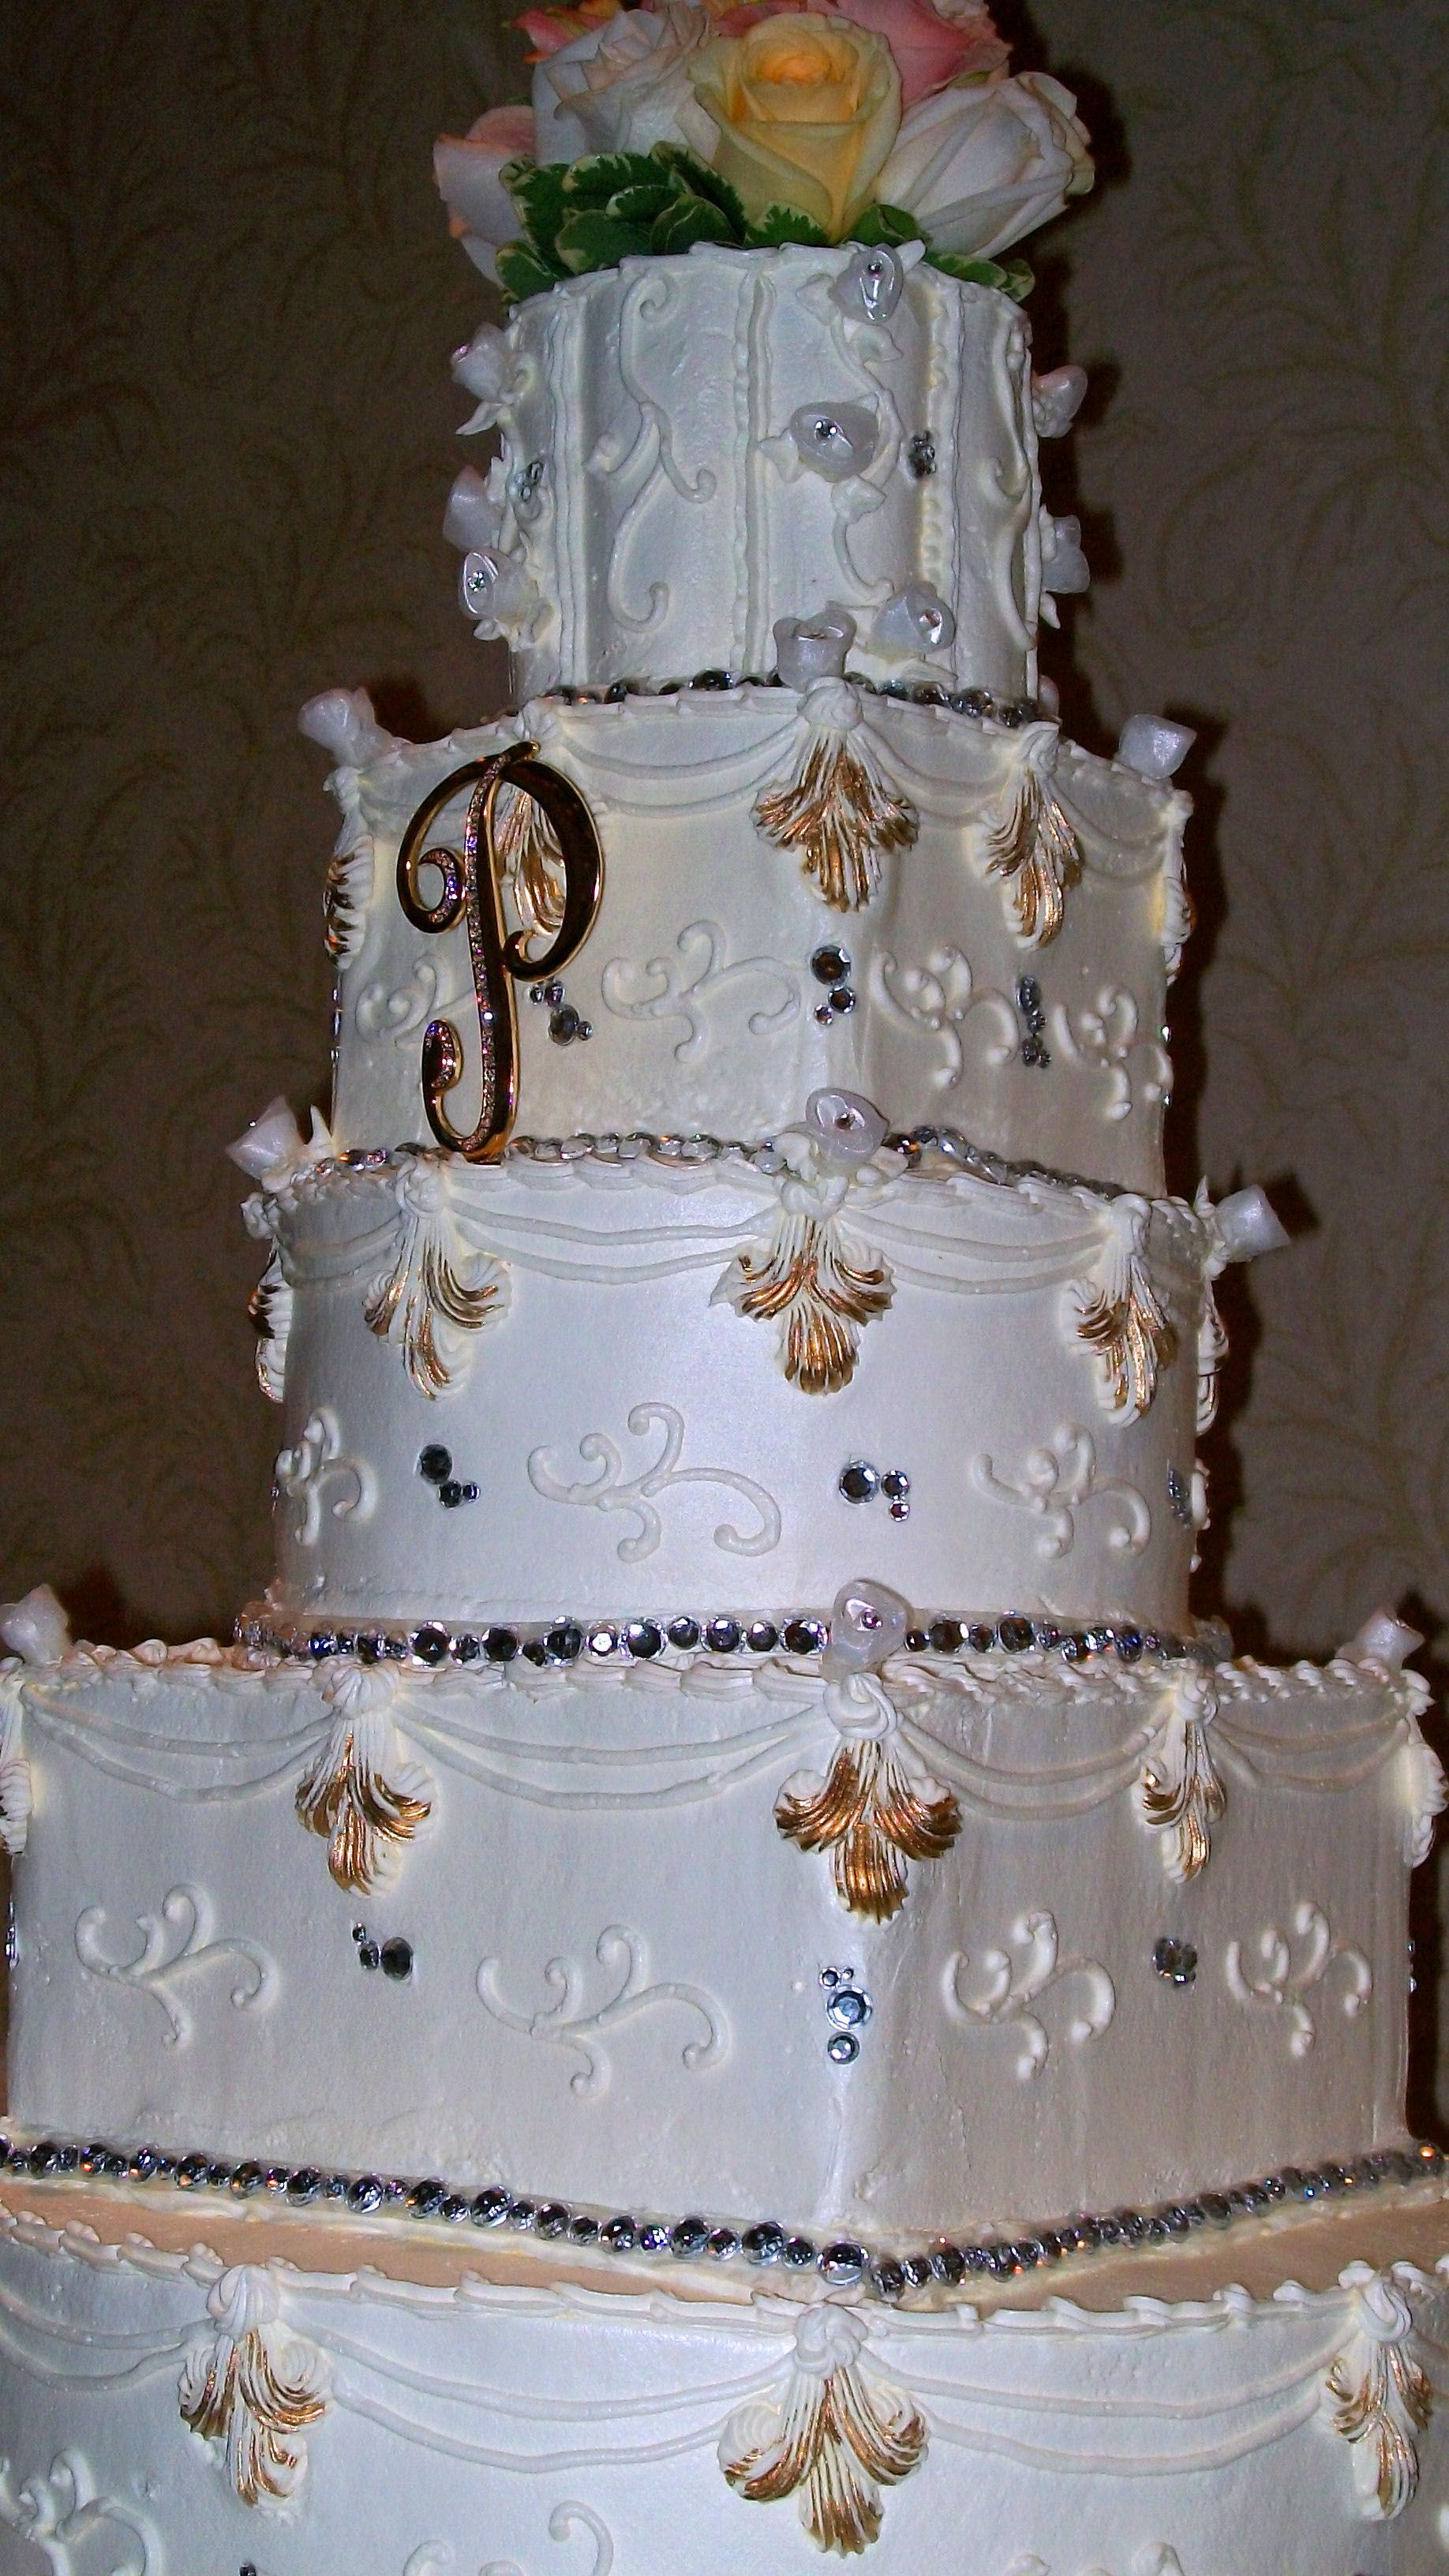 Elaborate Wedding Cake With Gold Accents Roma Bakery Crowne